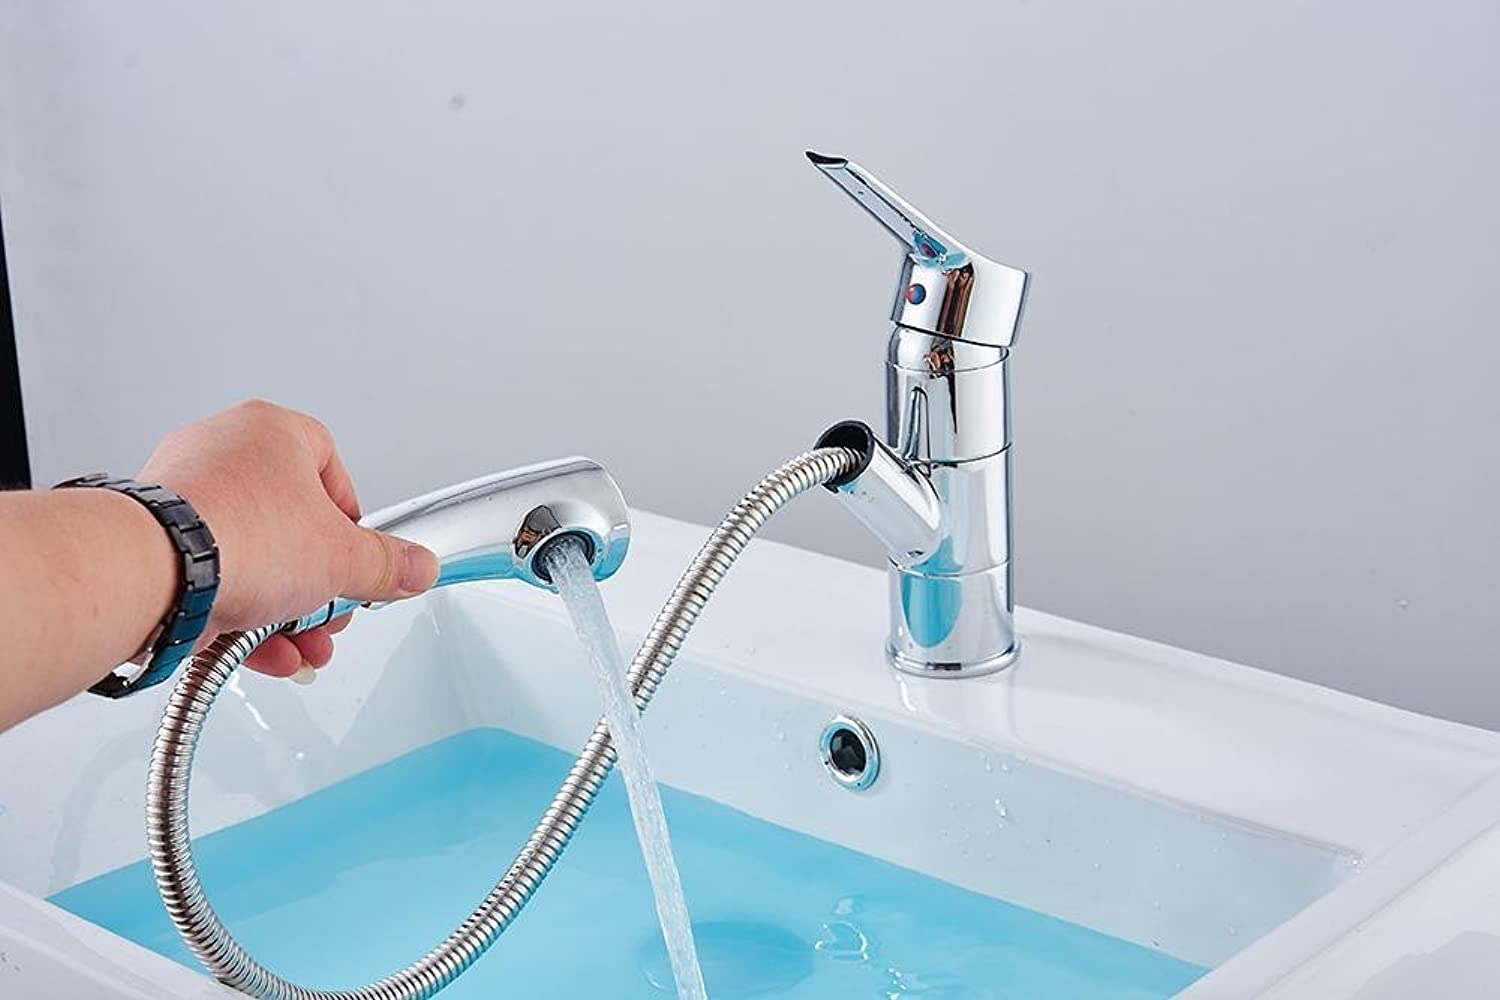 Full Copper Pull type Faucet Deck Mounted redatable Hot and Cold Mixing Water Kitchen Bathroom Sink Vegetable Wash Tap